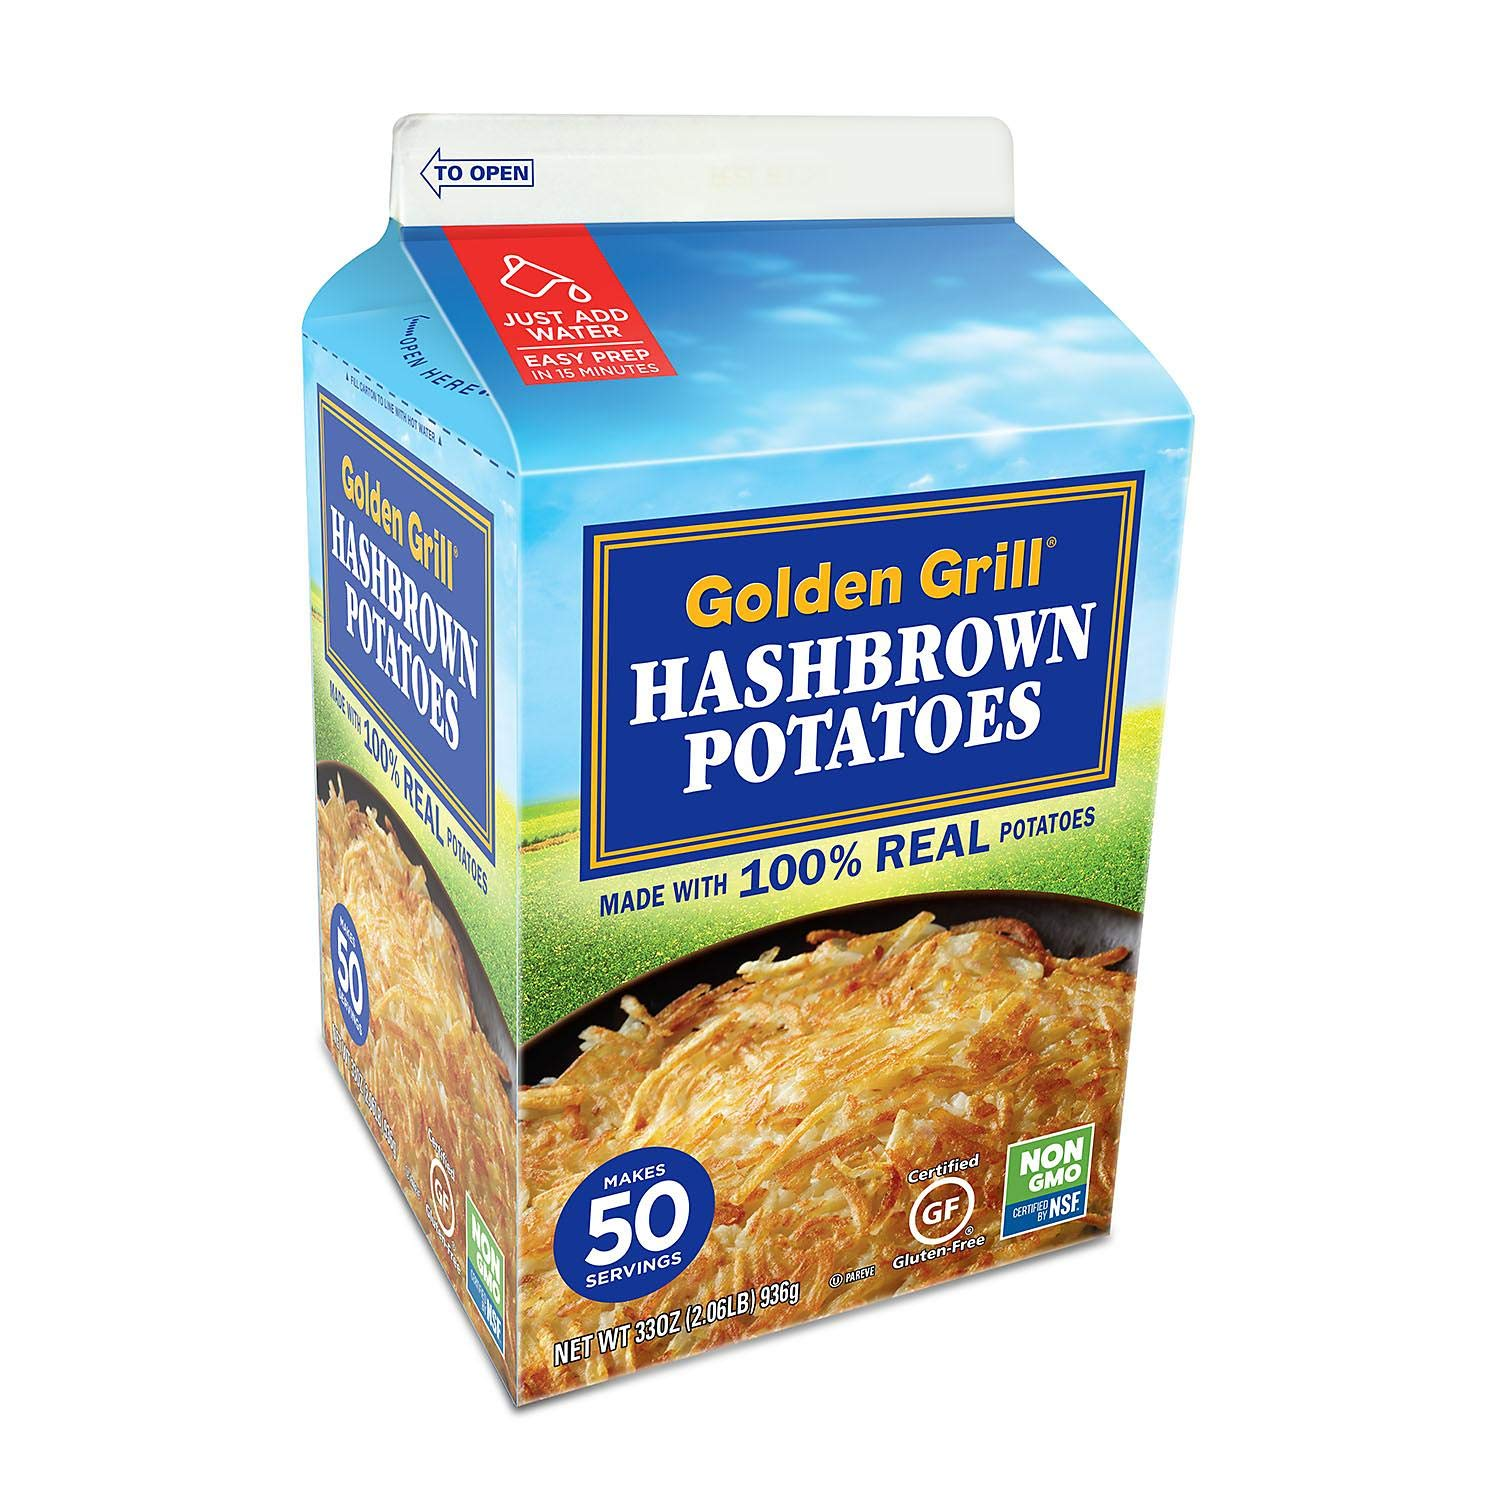 Golden Grill Premium Hashbrown Potatoes 33 oz. A1